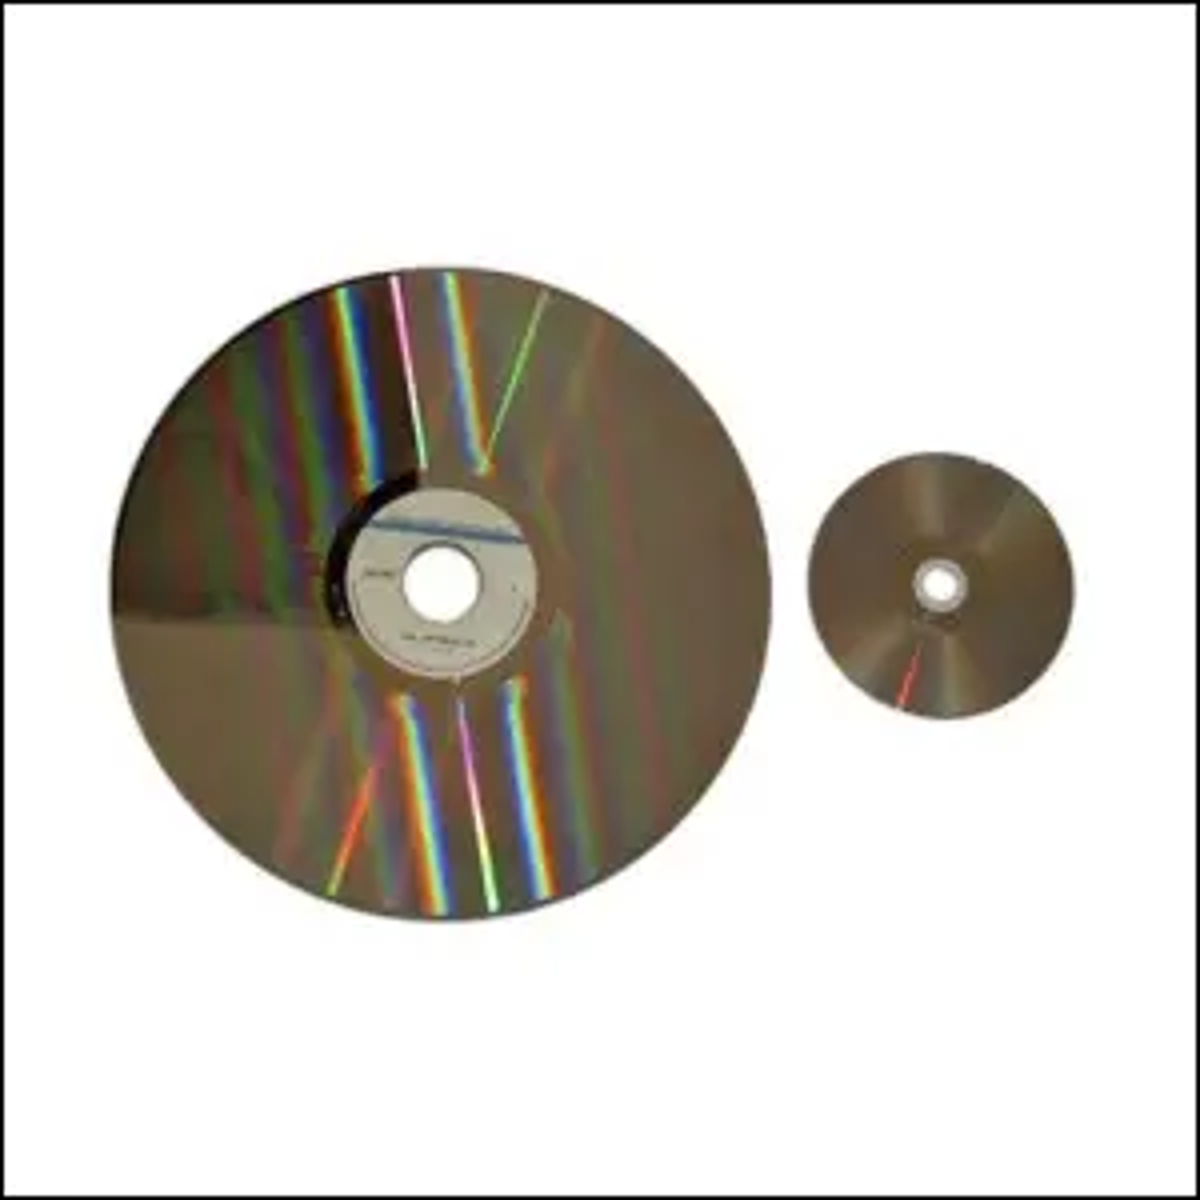 A size comparison between a LaserDisc (on the left) and a DVD (on the right).